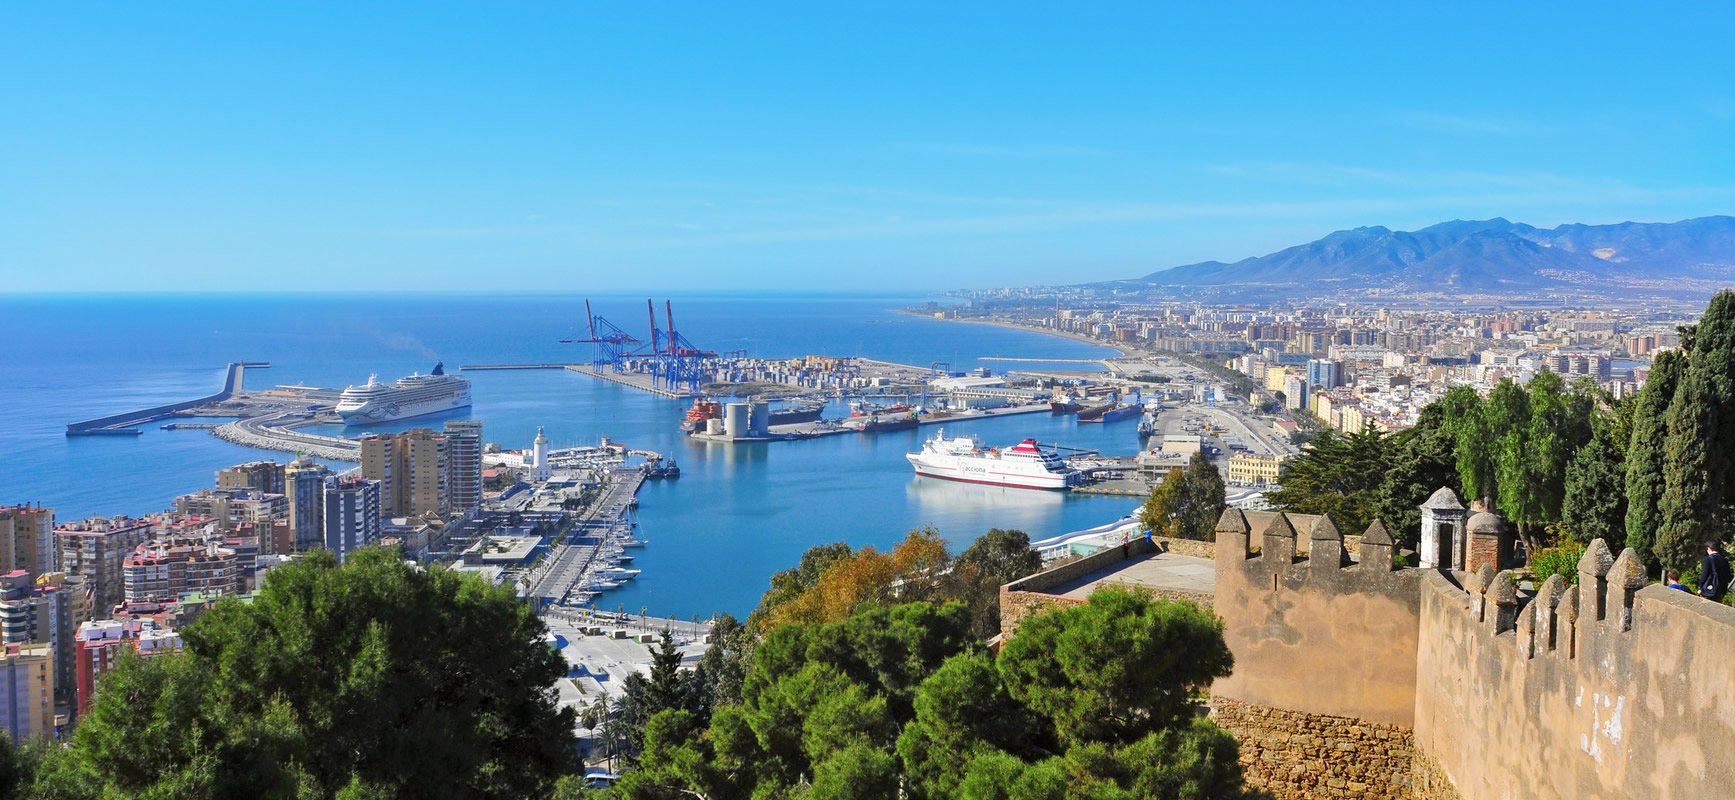 when's the best time of year to go to Malaga